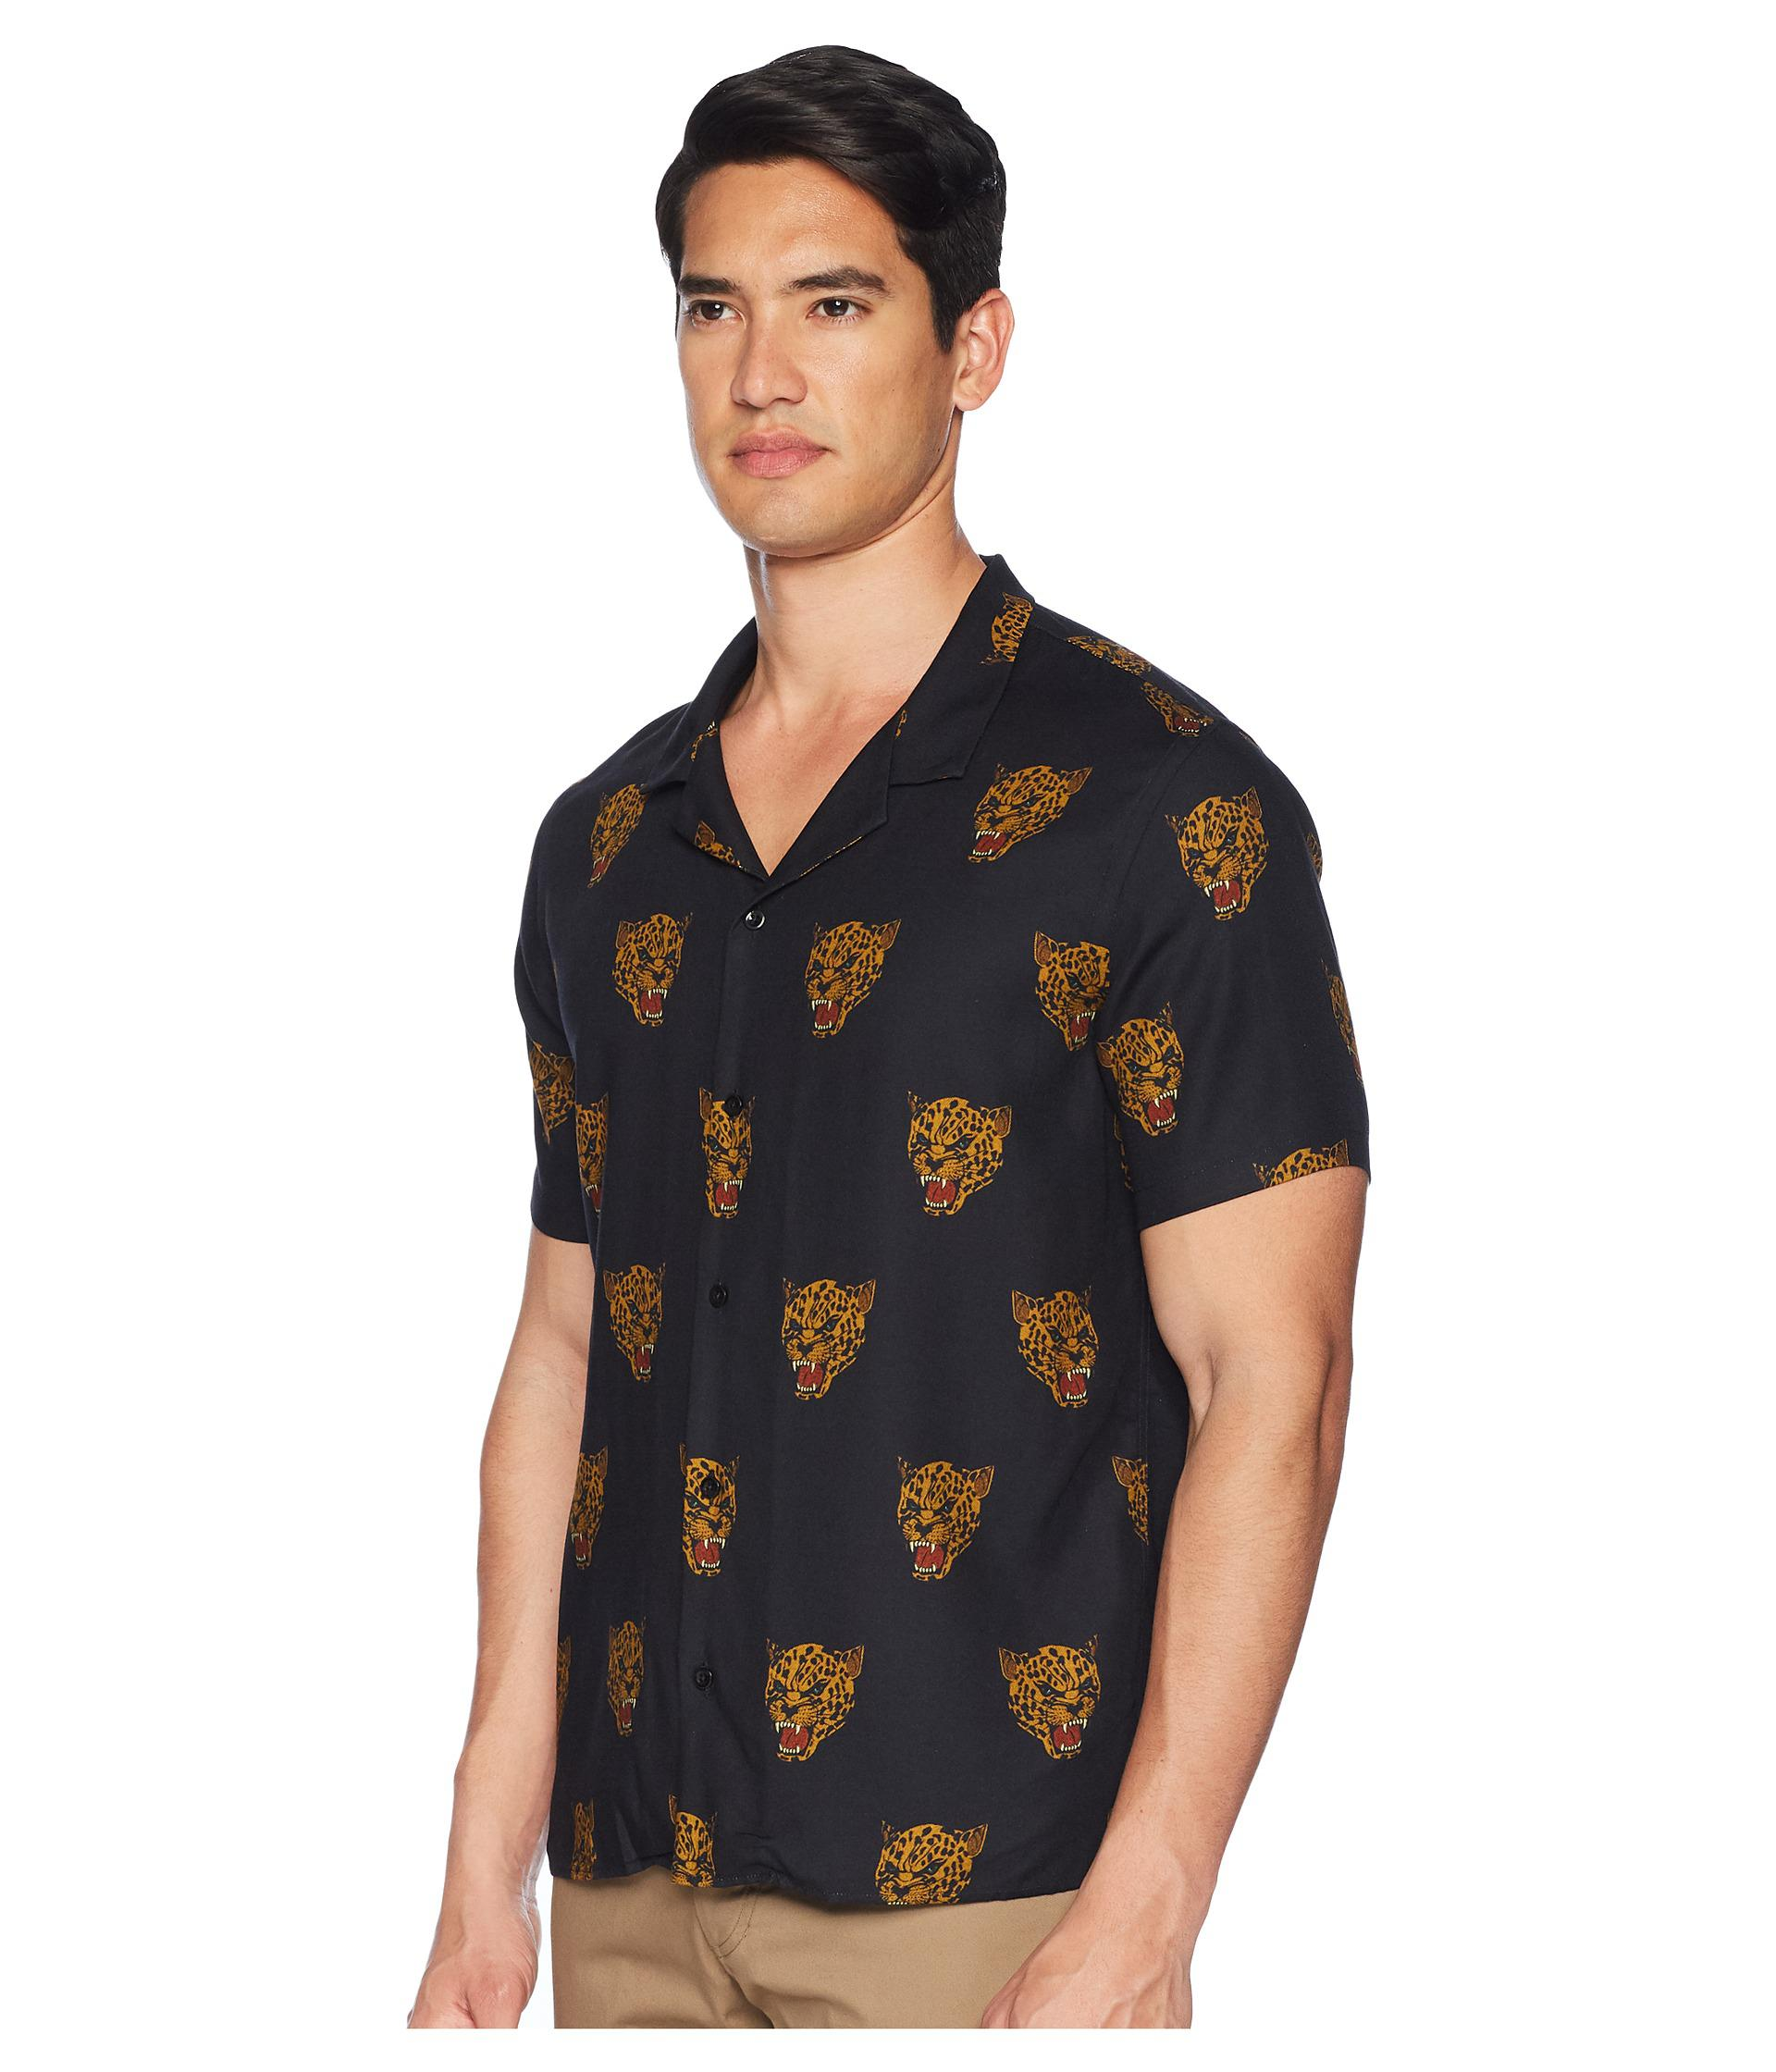 0b3a0059b24f The Kooples Desert Leopard Printed Short Sleeve Shirt in Black for ...